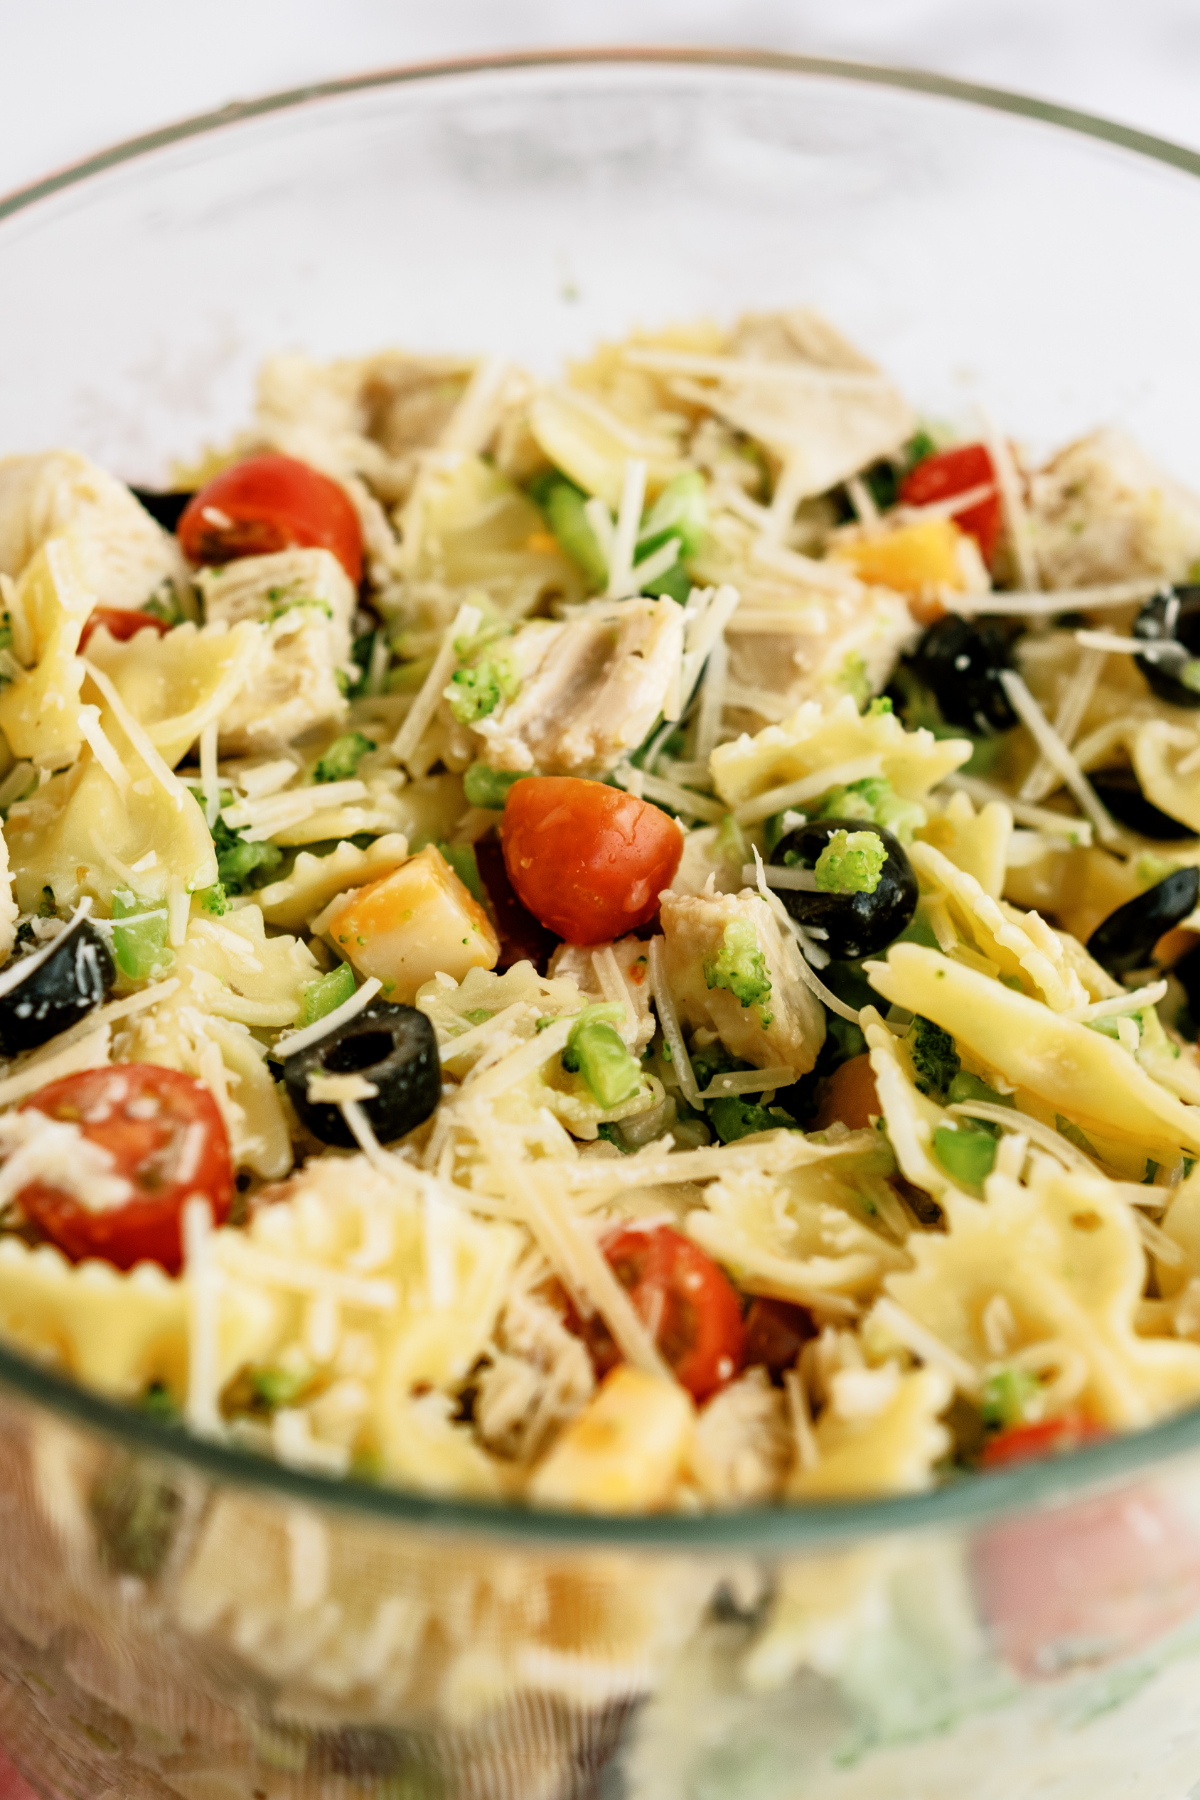 Grilled Chicken Bow Tie Pasta Salad in glass bowl